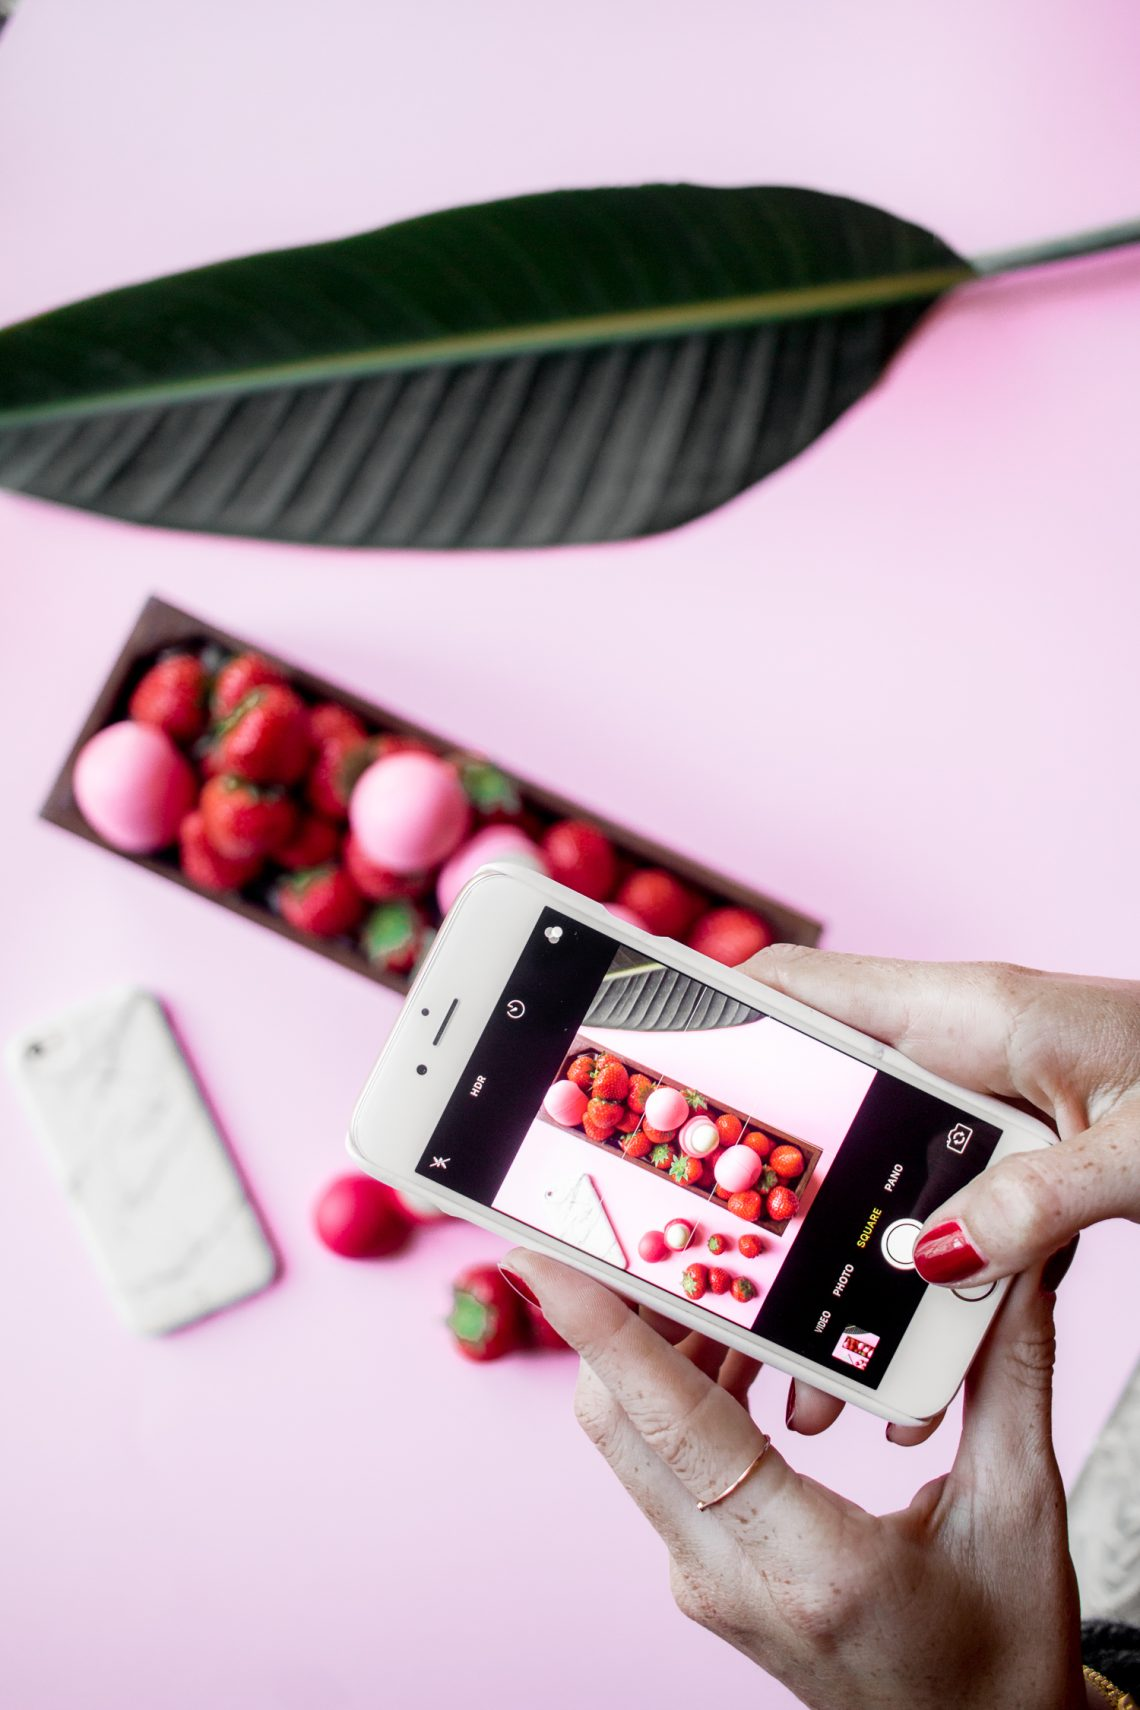 Instagram Photography: The Perfect Flatlay